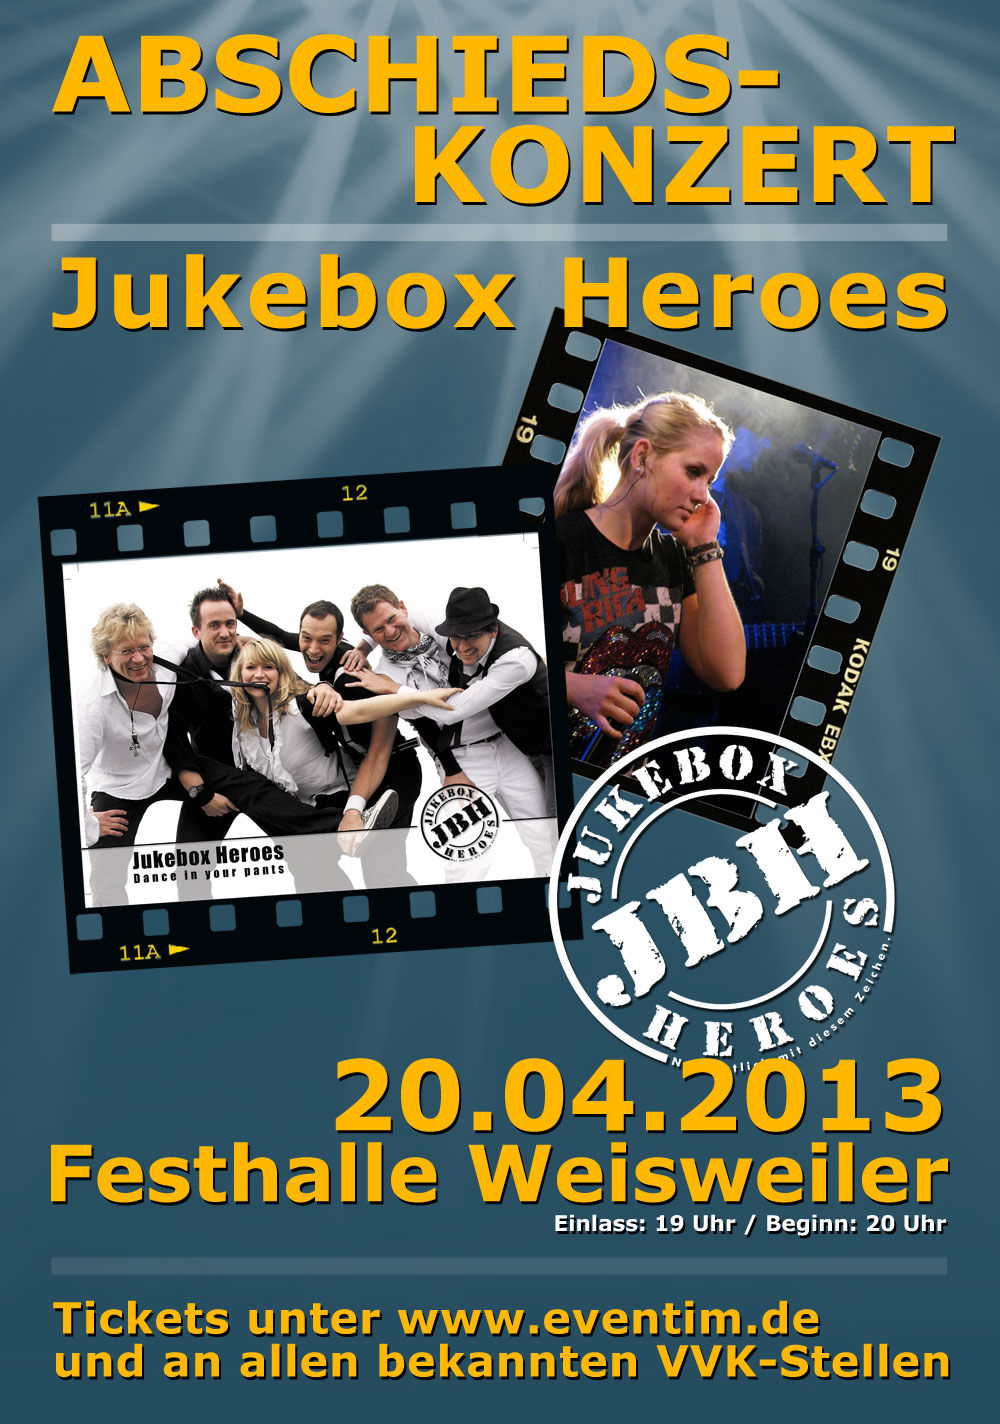 Jukebox Heroes – dance in your pants » Vorverkauf Abschiedskonzert ...